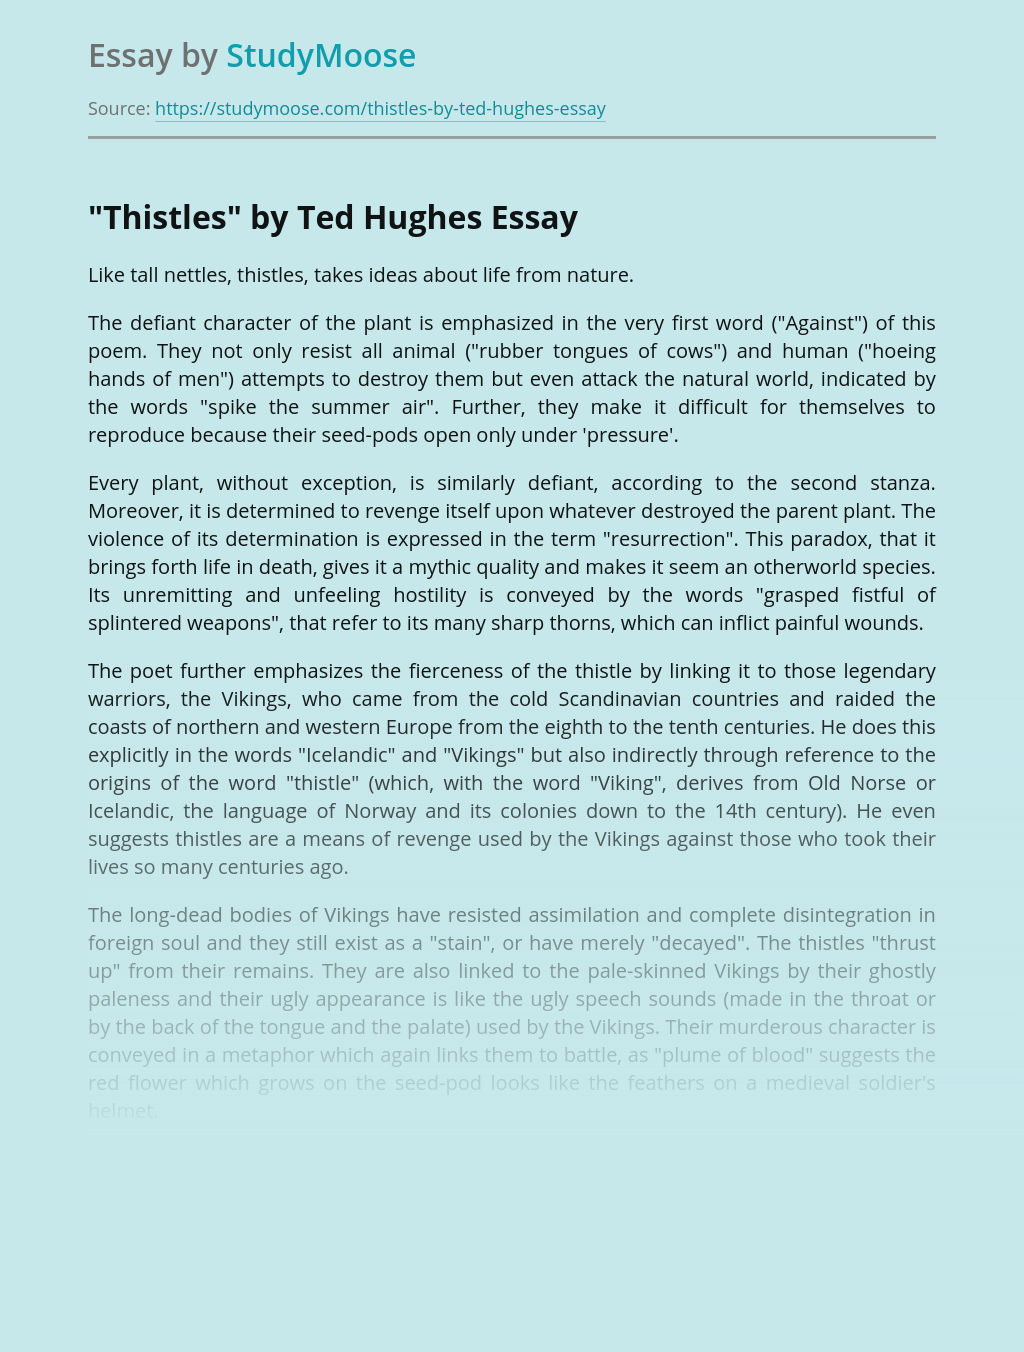 A Poem Thistles by Ted Hughes